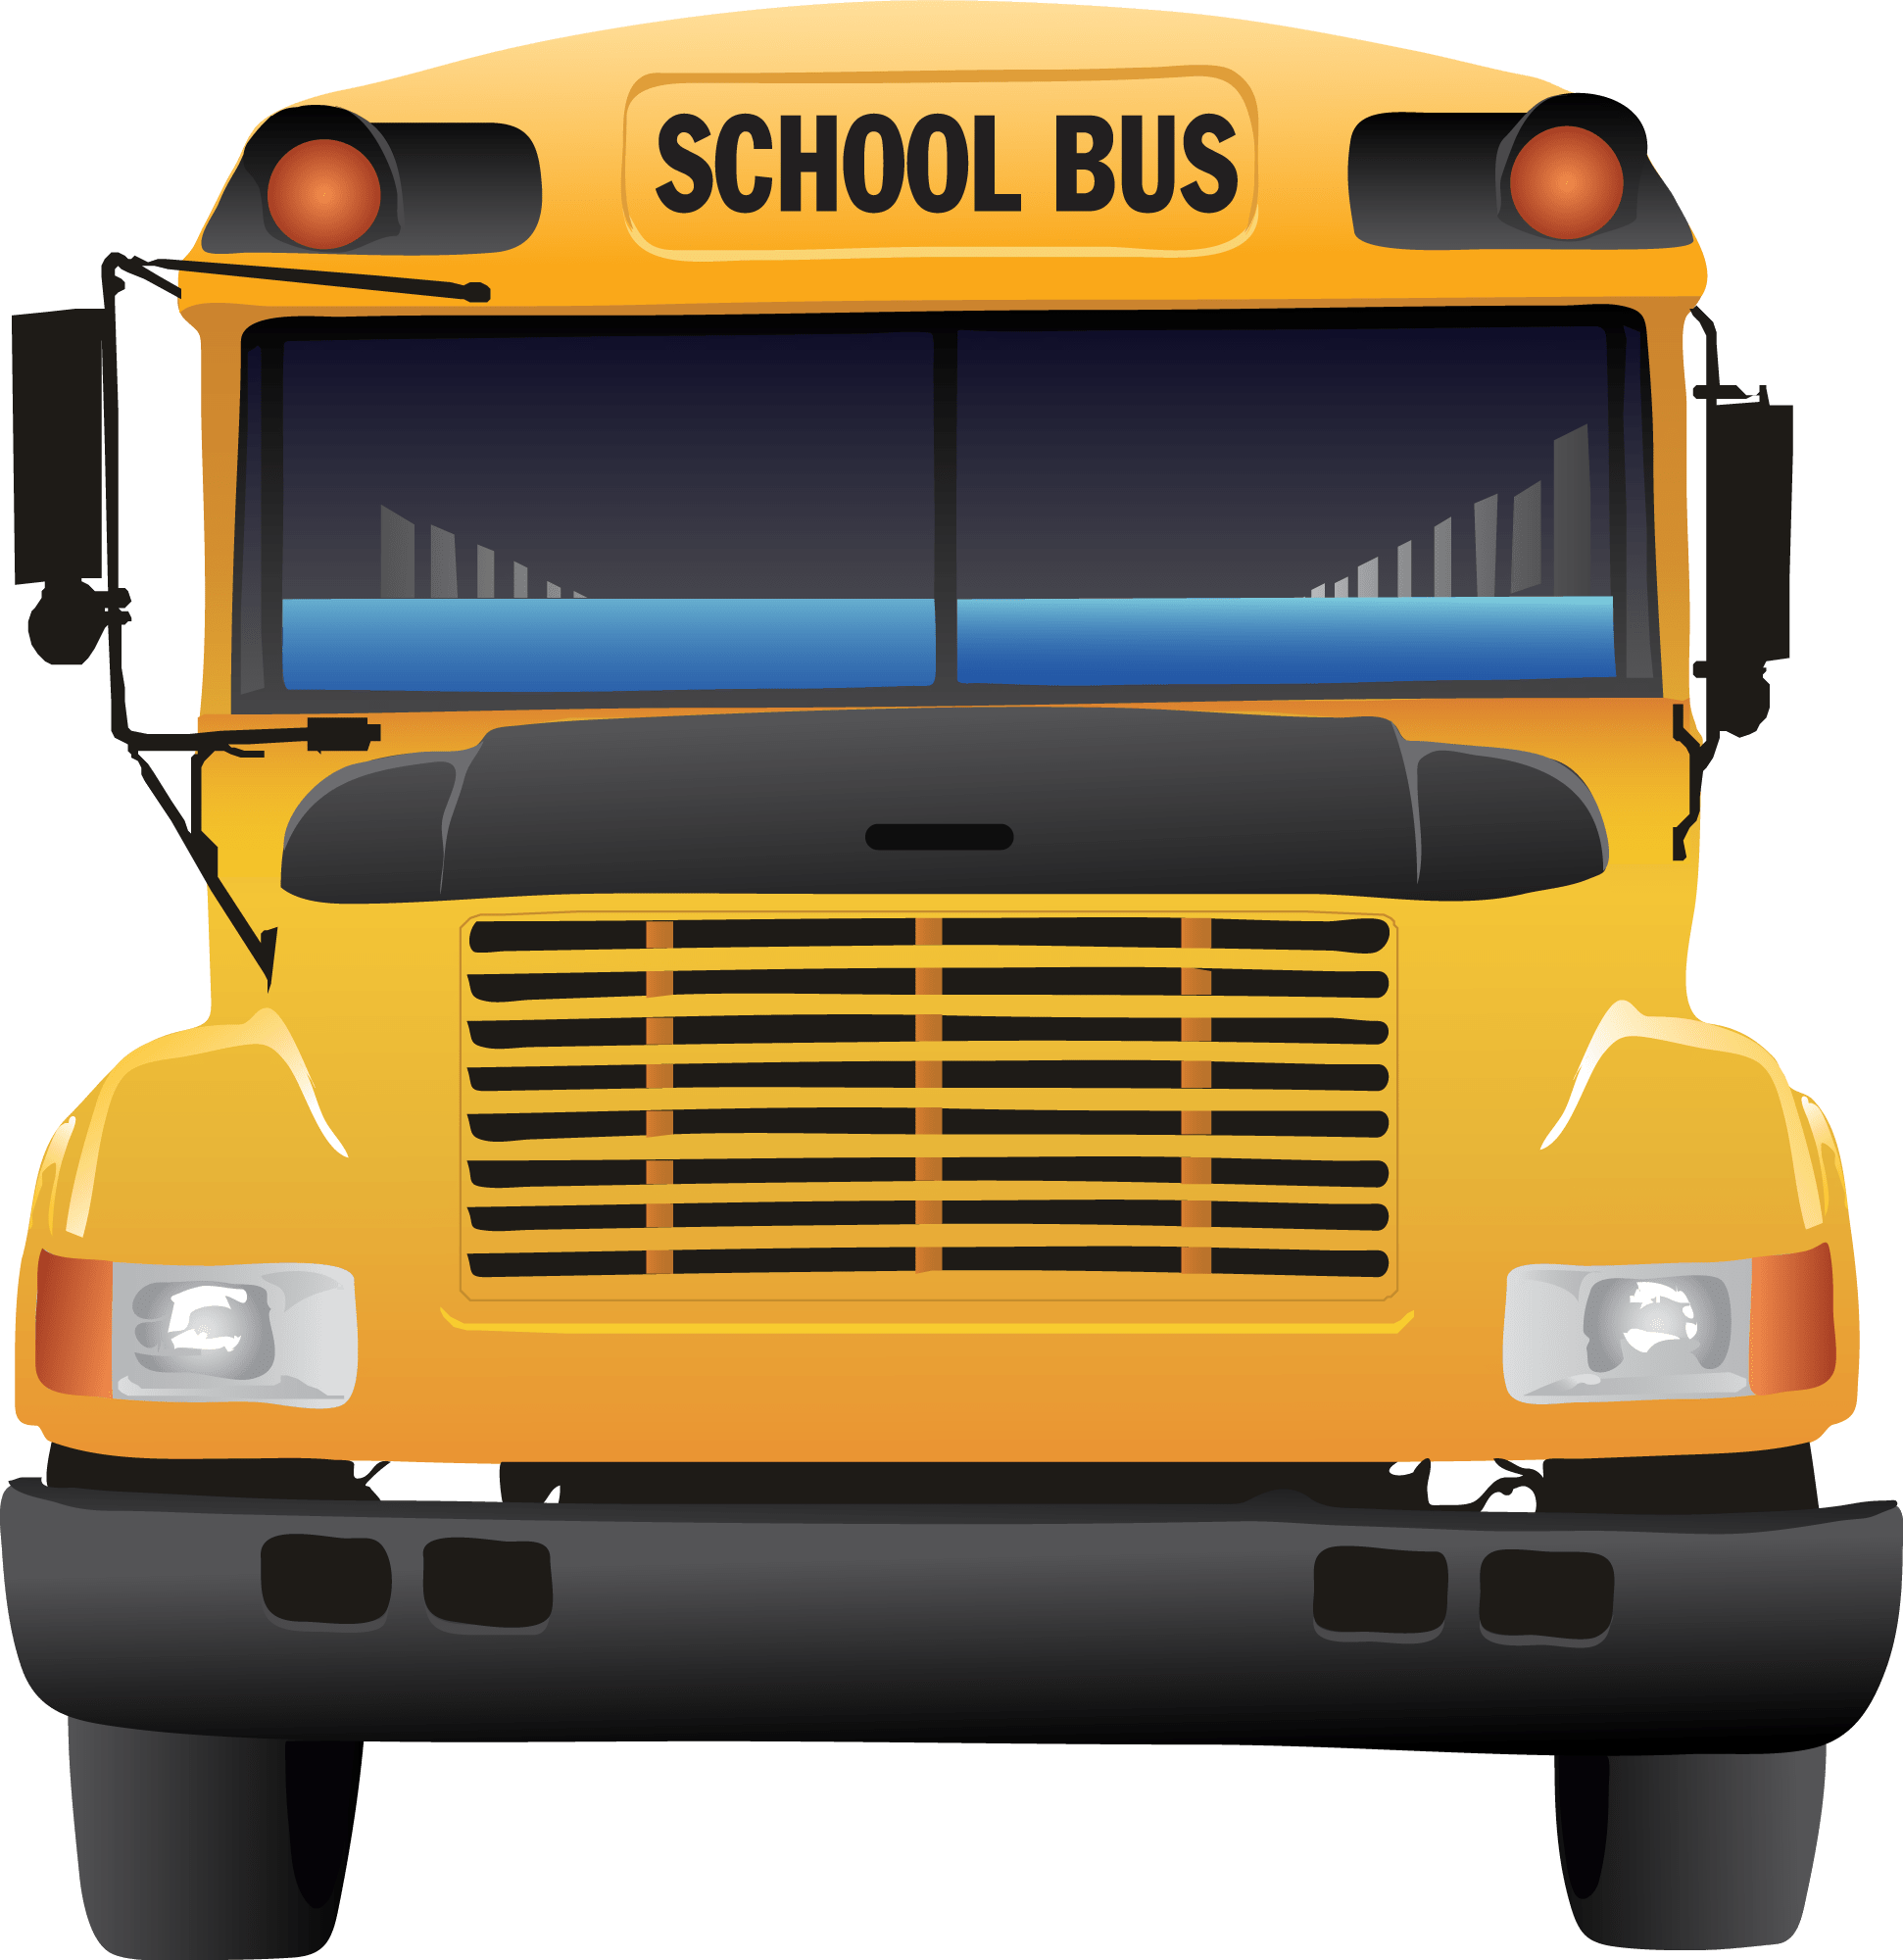 School transportation clipart banner freeuse download 18fresh School Bus Clipart Free - Clip arts & coloring pages banner freeuse download